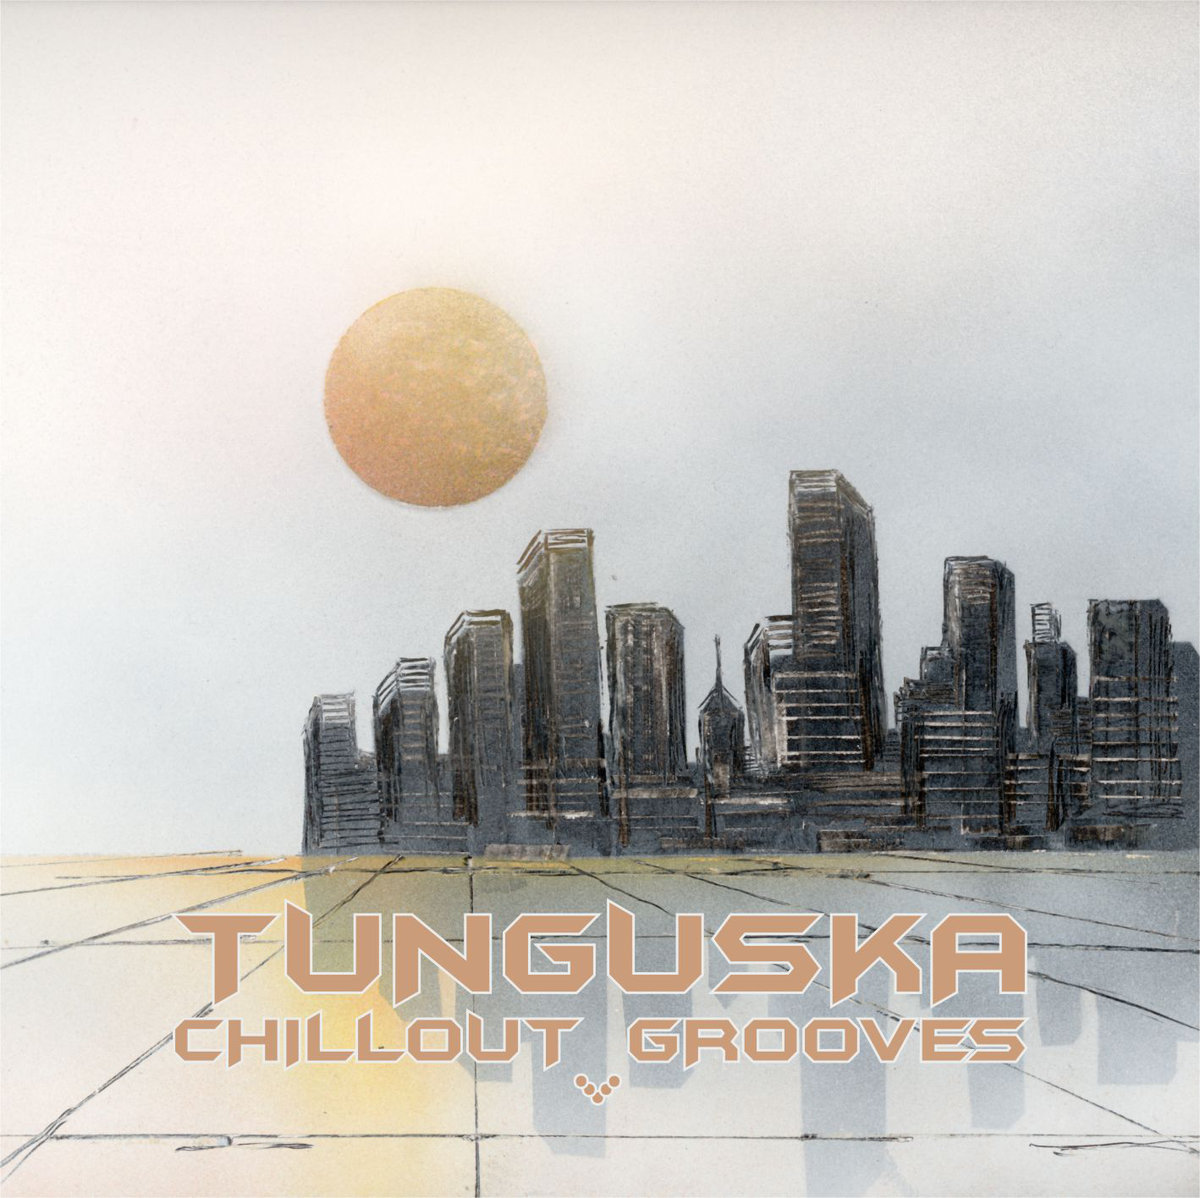 Aleksey Chistilin - Away From The City (Skit) @ 'Tunguska Chillout Grooves - Volume 5' album (electronic, ambient)